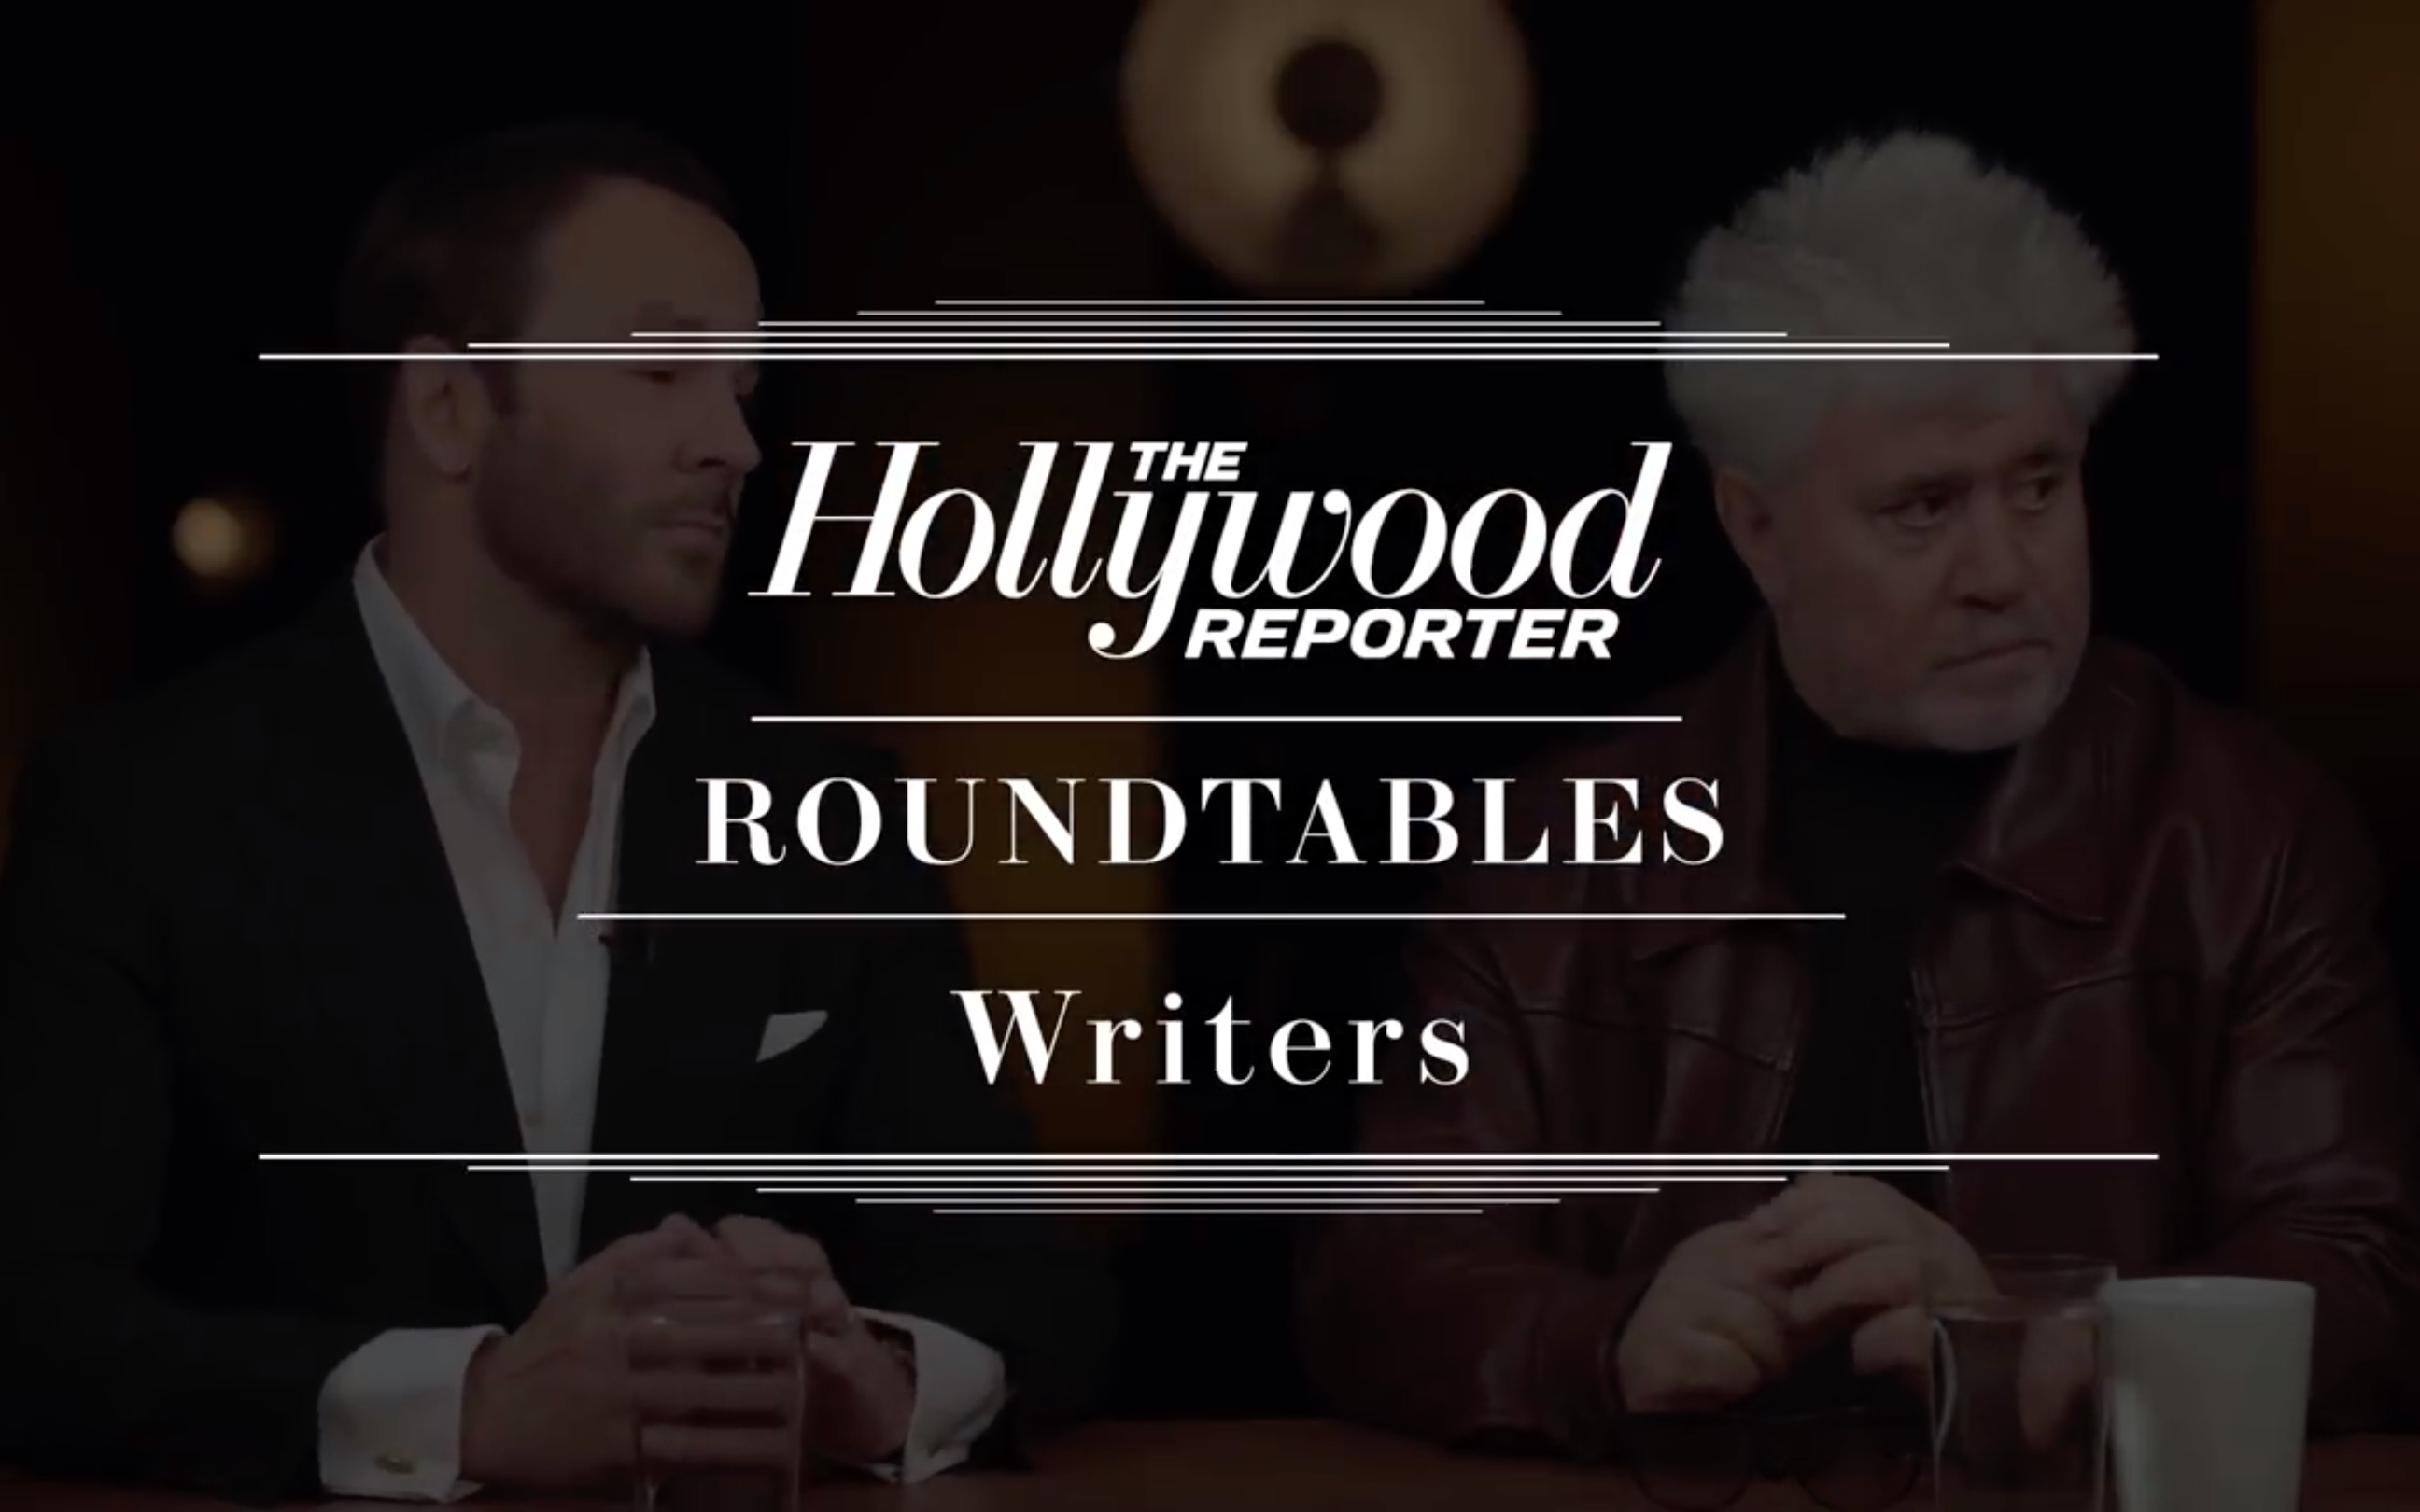 The Hollywood Reporter - ROUNDTABLES: Writers